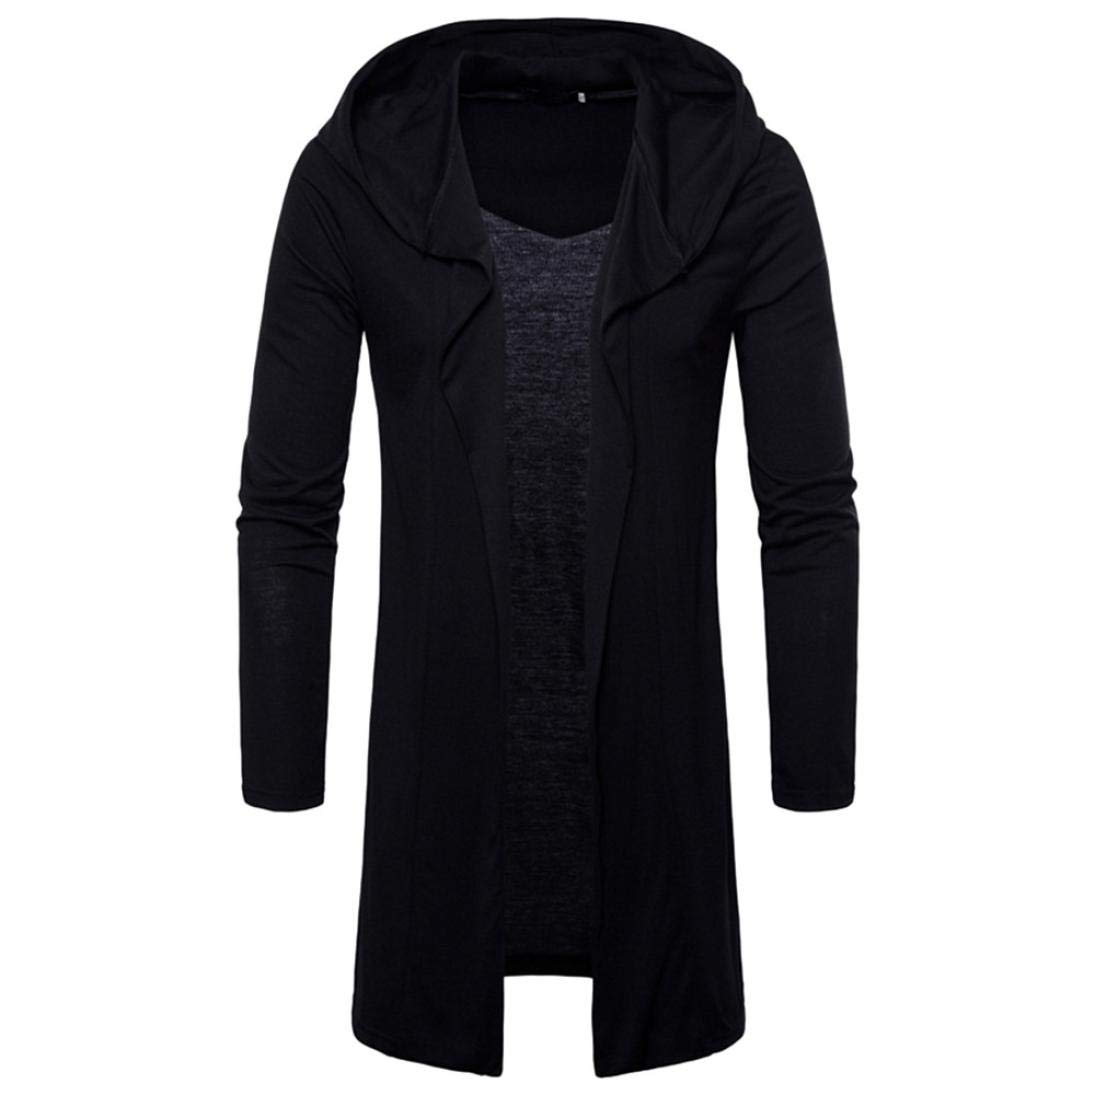 iZHH Mens Hooded Outwear Blouse Solid Trench Coat Jacket Cardigan Long Sleeve(Black,US-M)